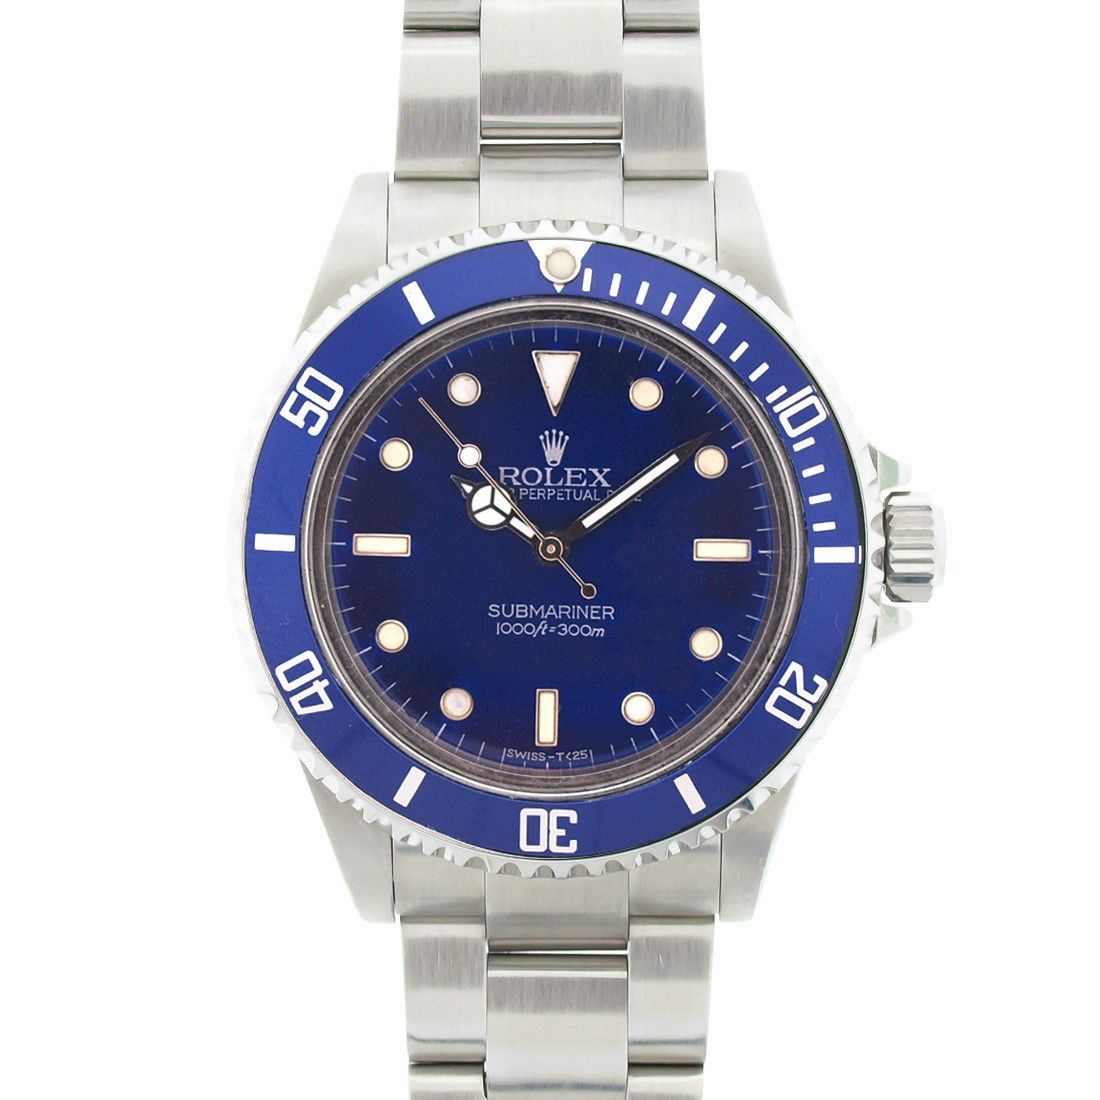 Rolex Stainless Steel Non Date Submariner With Blue Dial Blue Bezel Model 14060m Rolex Rolex Watches For Men Rolex Watches Submariner